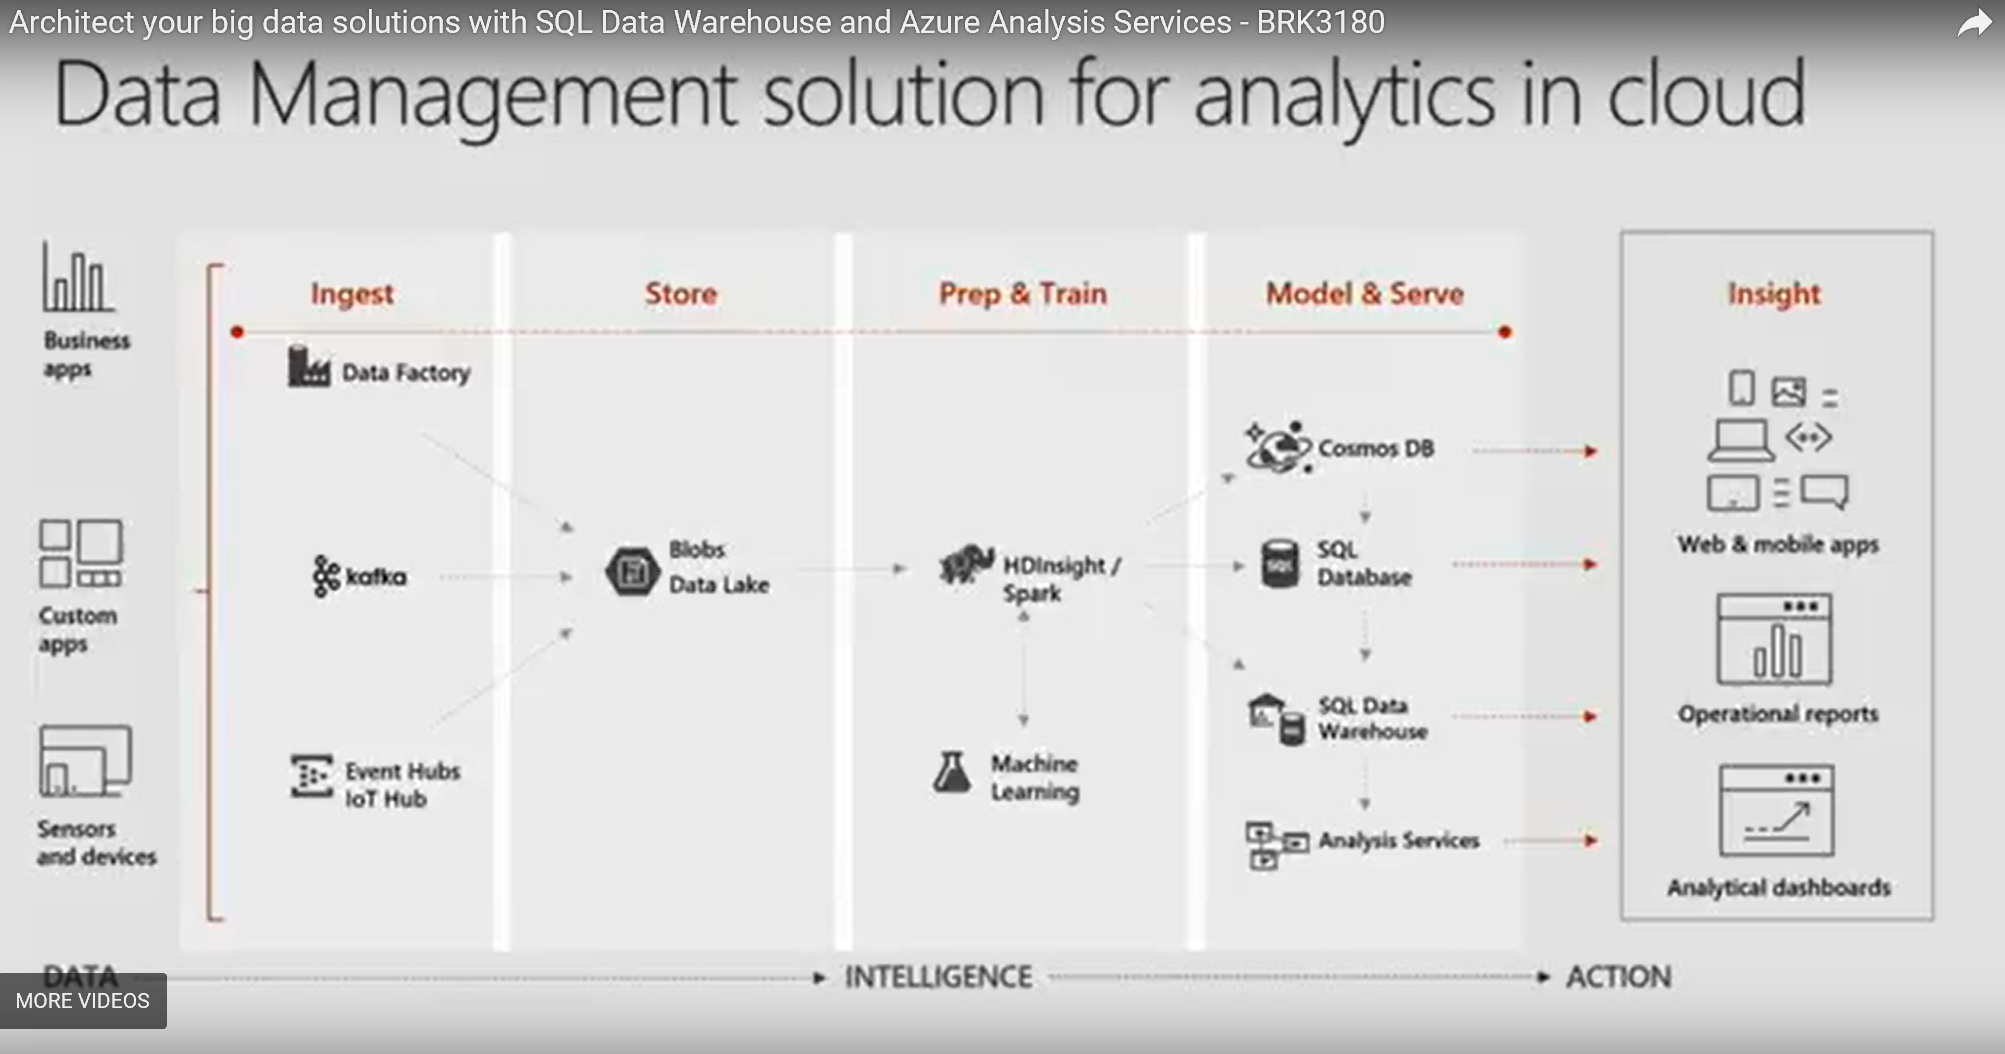 Architect your big data solutions with SQL Data Warehouse and Azure Analysis Services